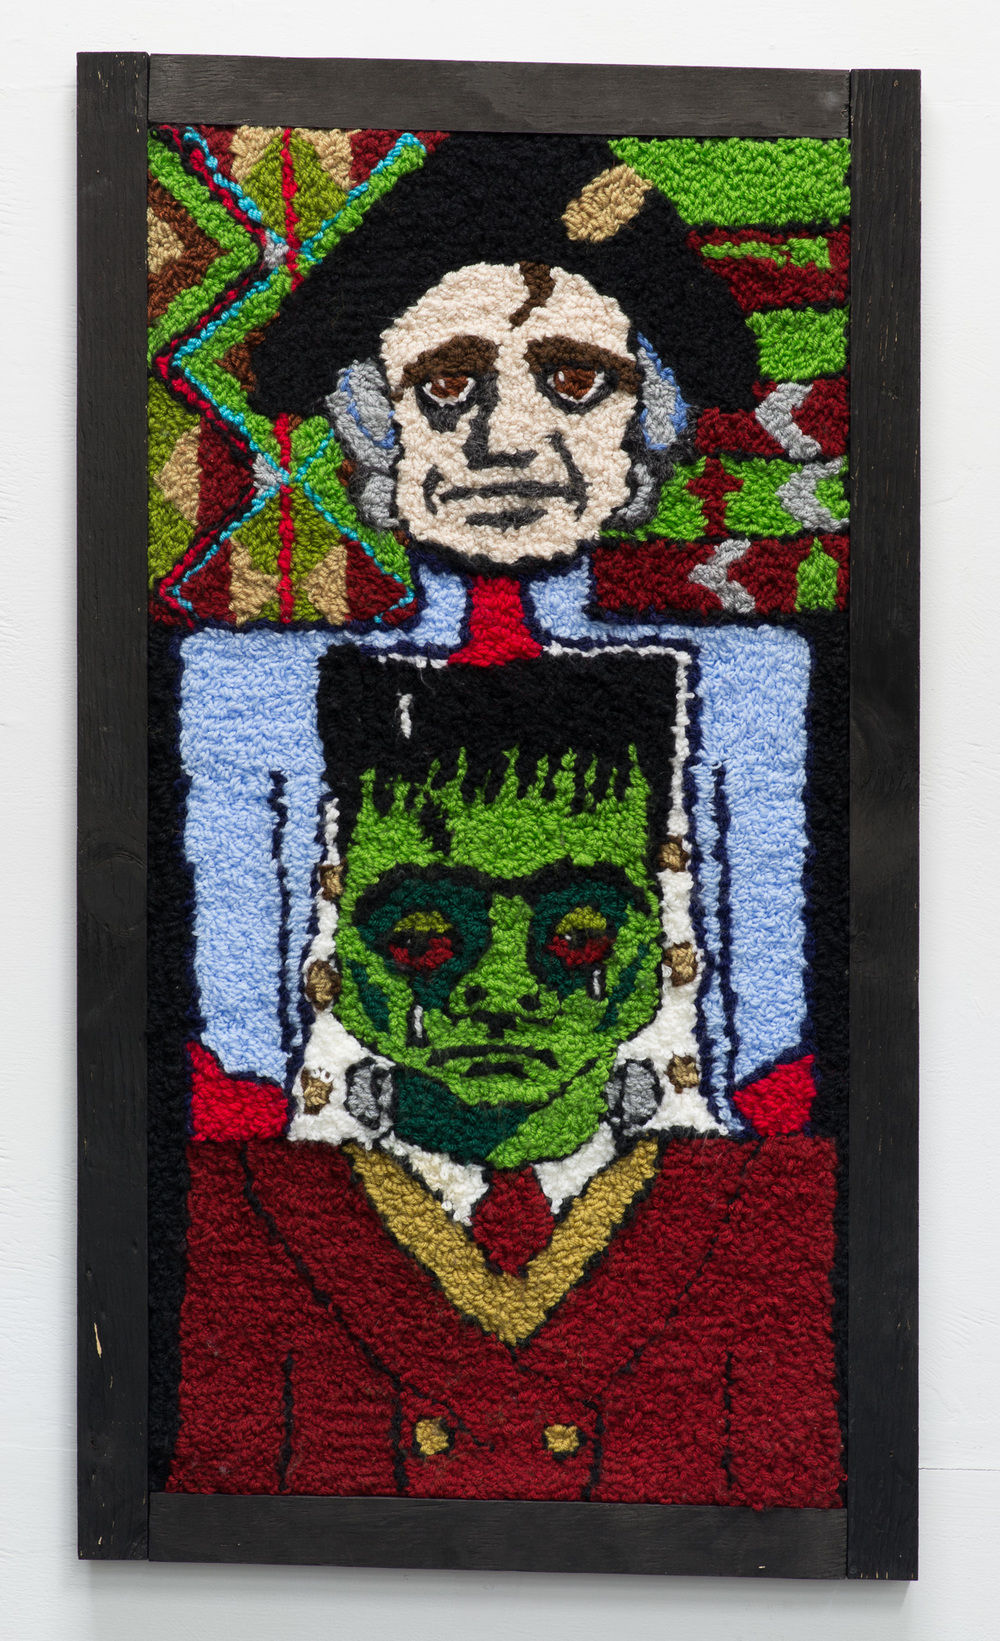 Empire is for Dicks  2015  Wool  90 x 55 x 3cm framed